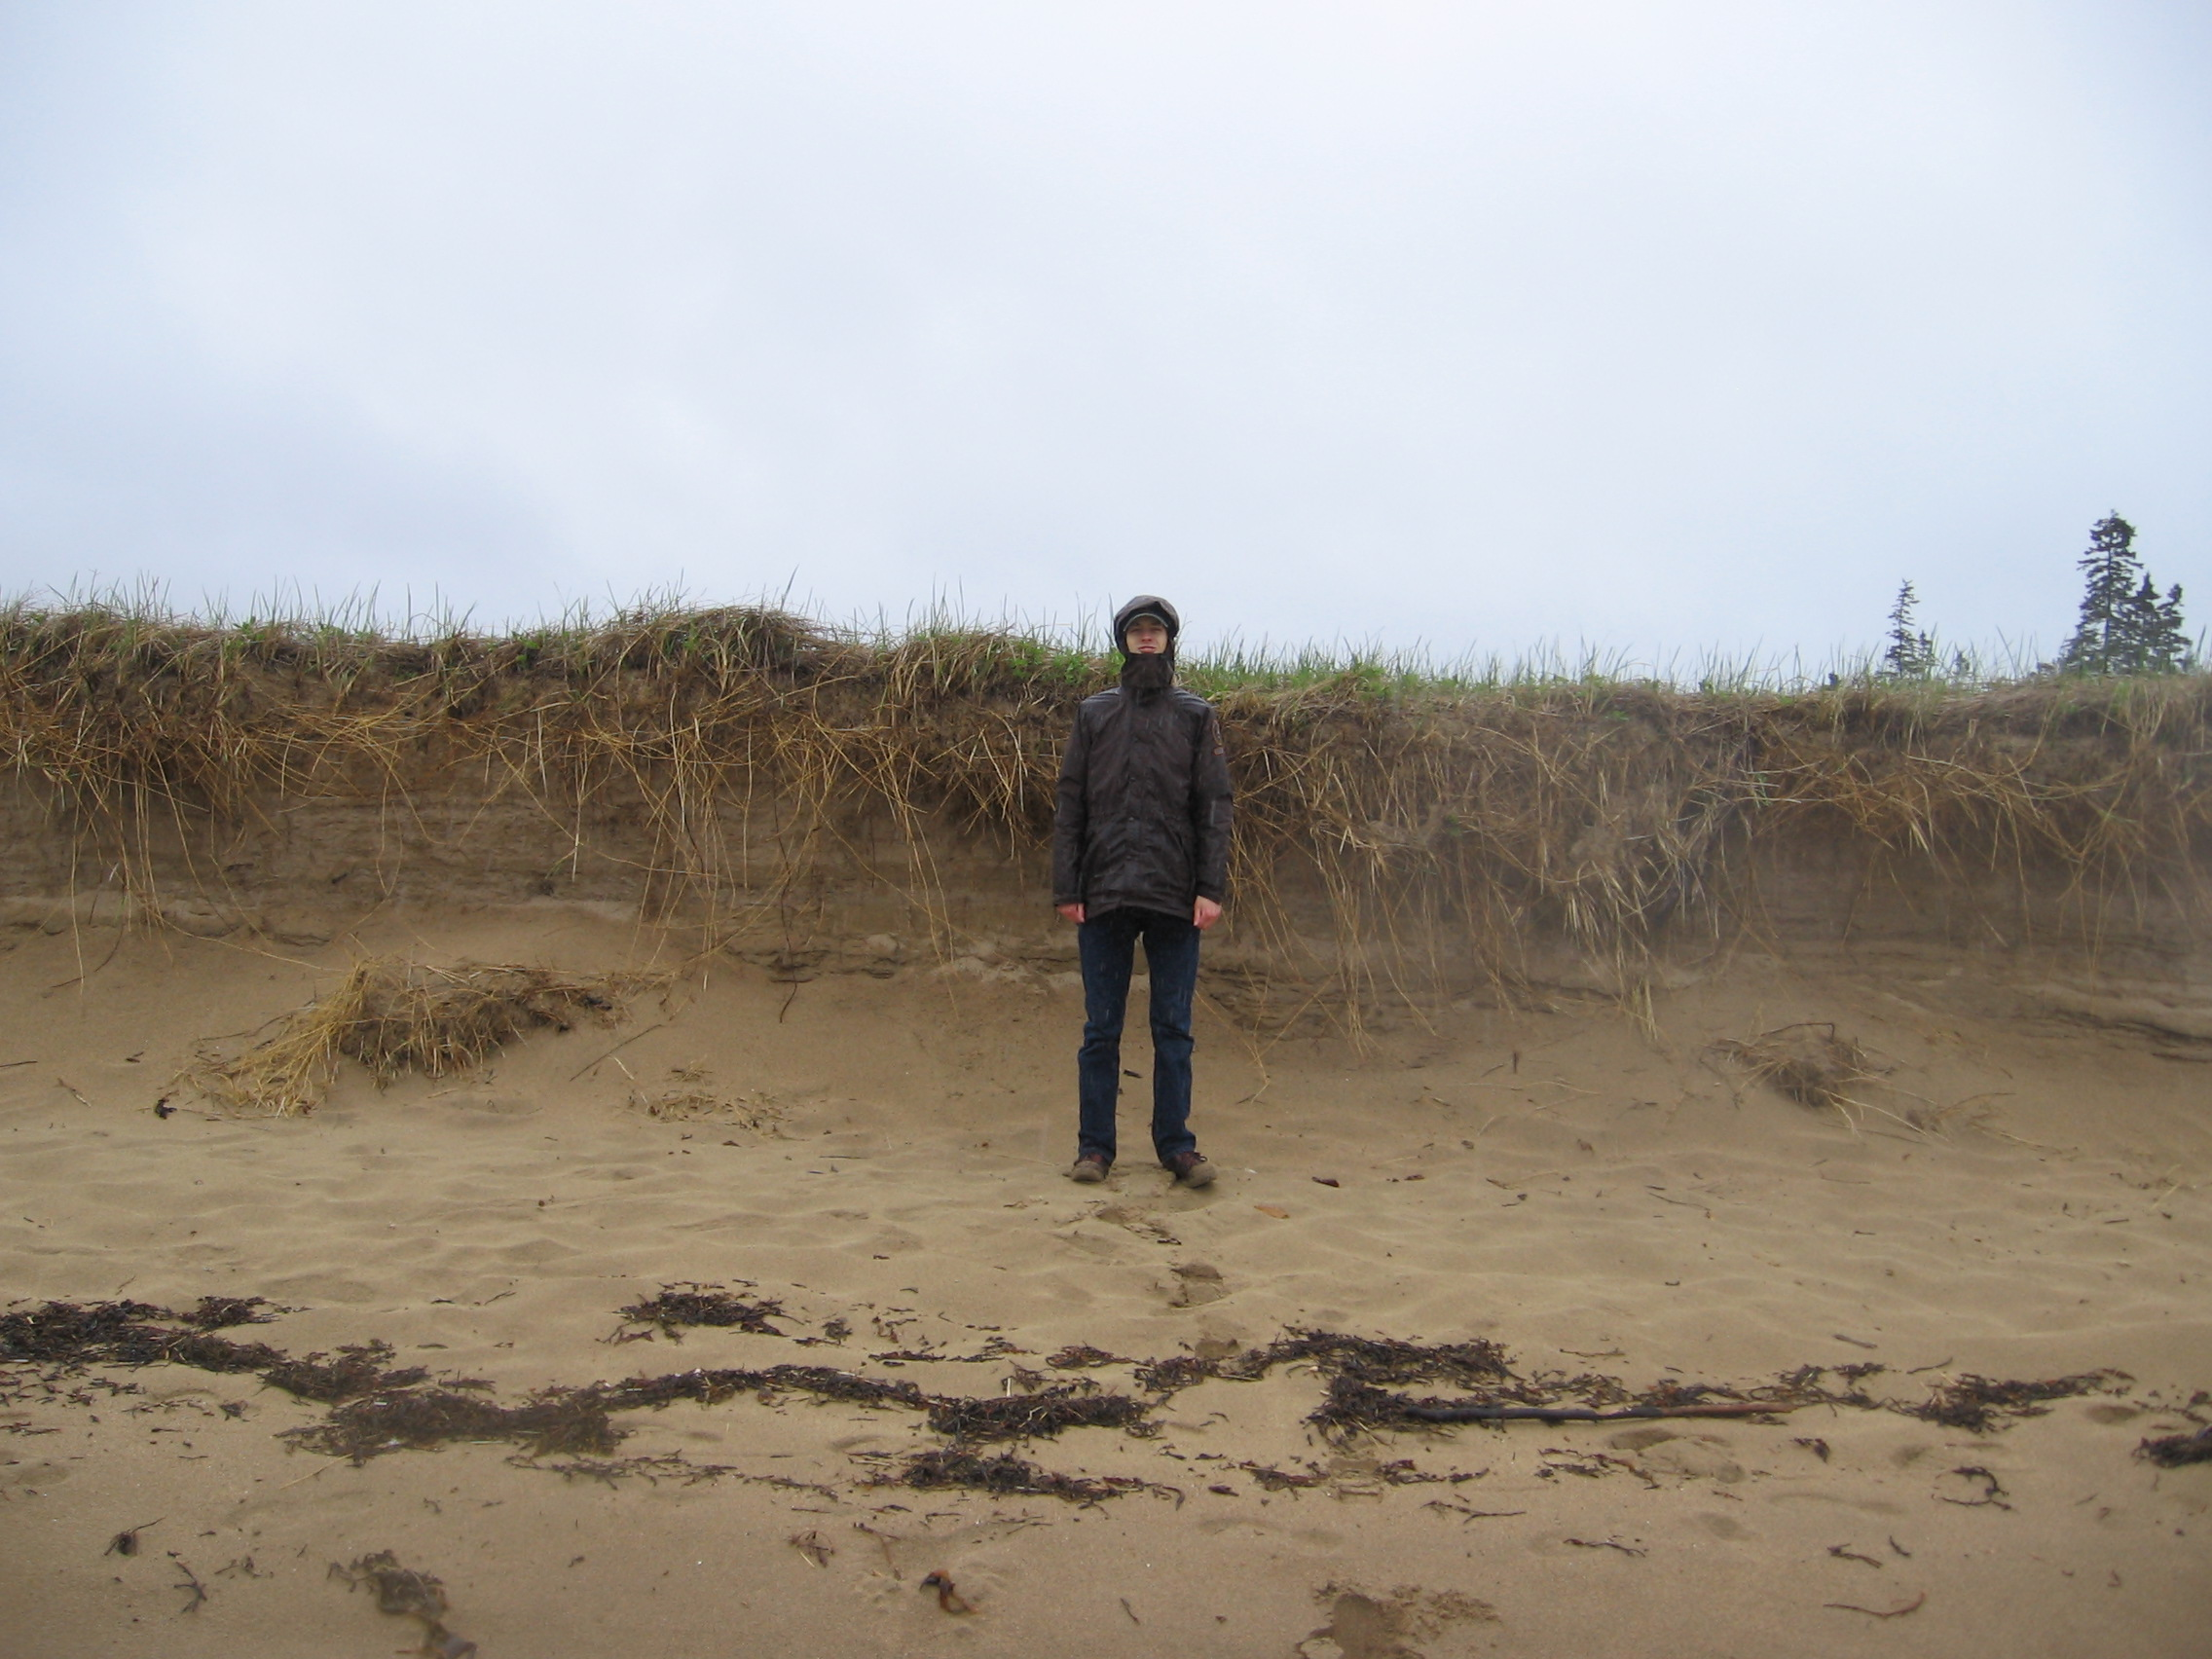 person standing beneath the sand berm for height reference.